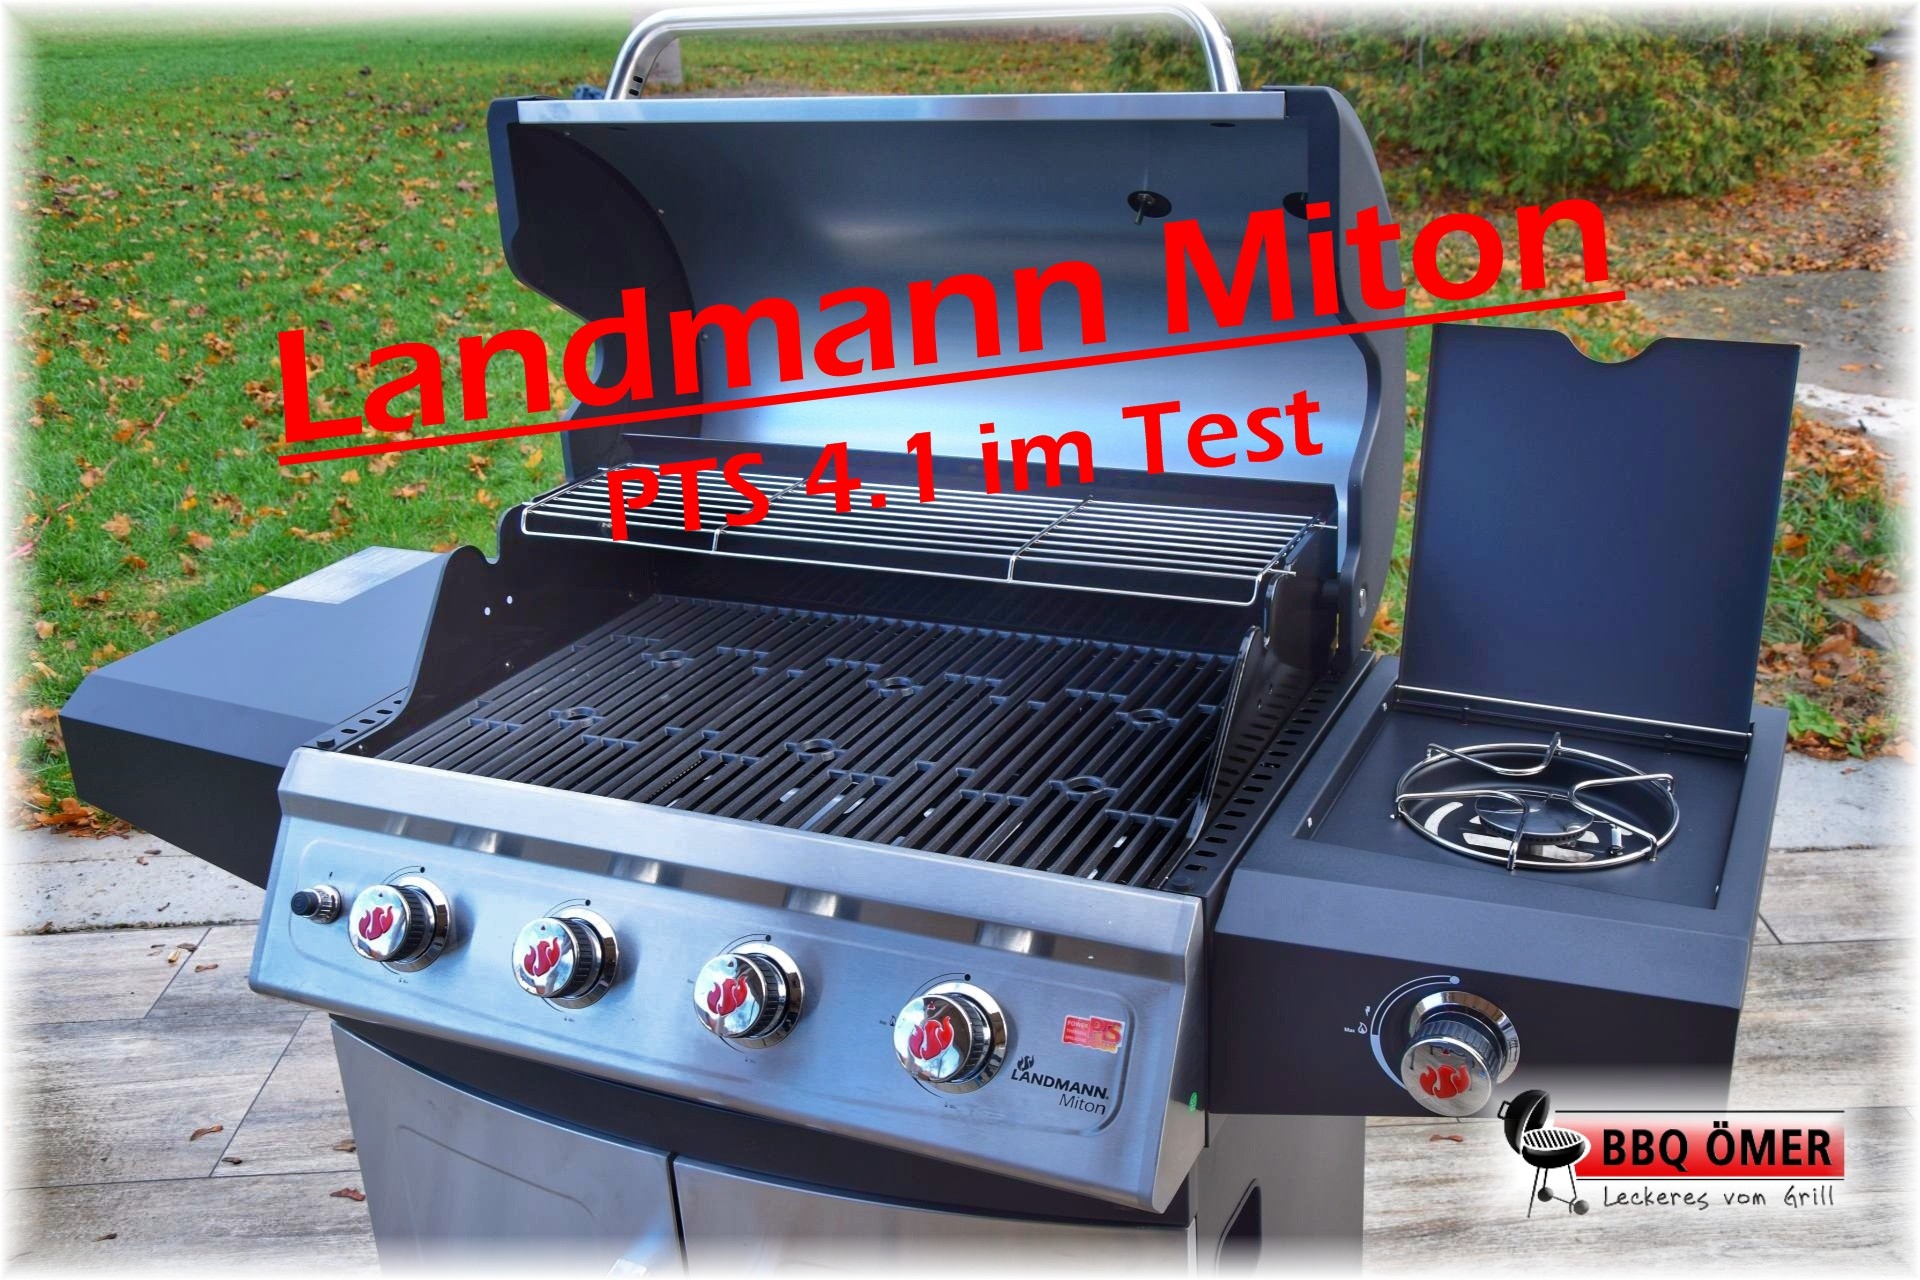 Landmann Gasgrill Zünder : Landmann miton pts 4.1 im test the american way bbq Ömer